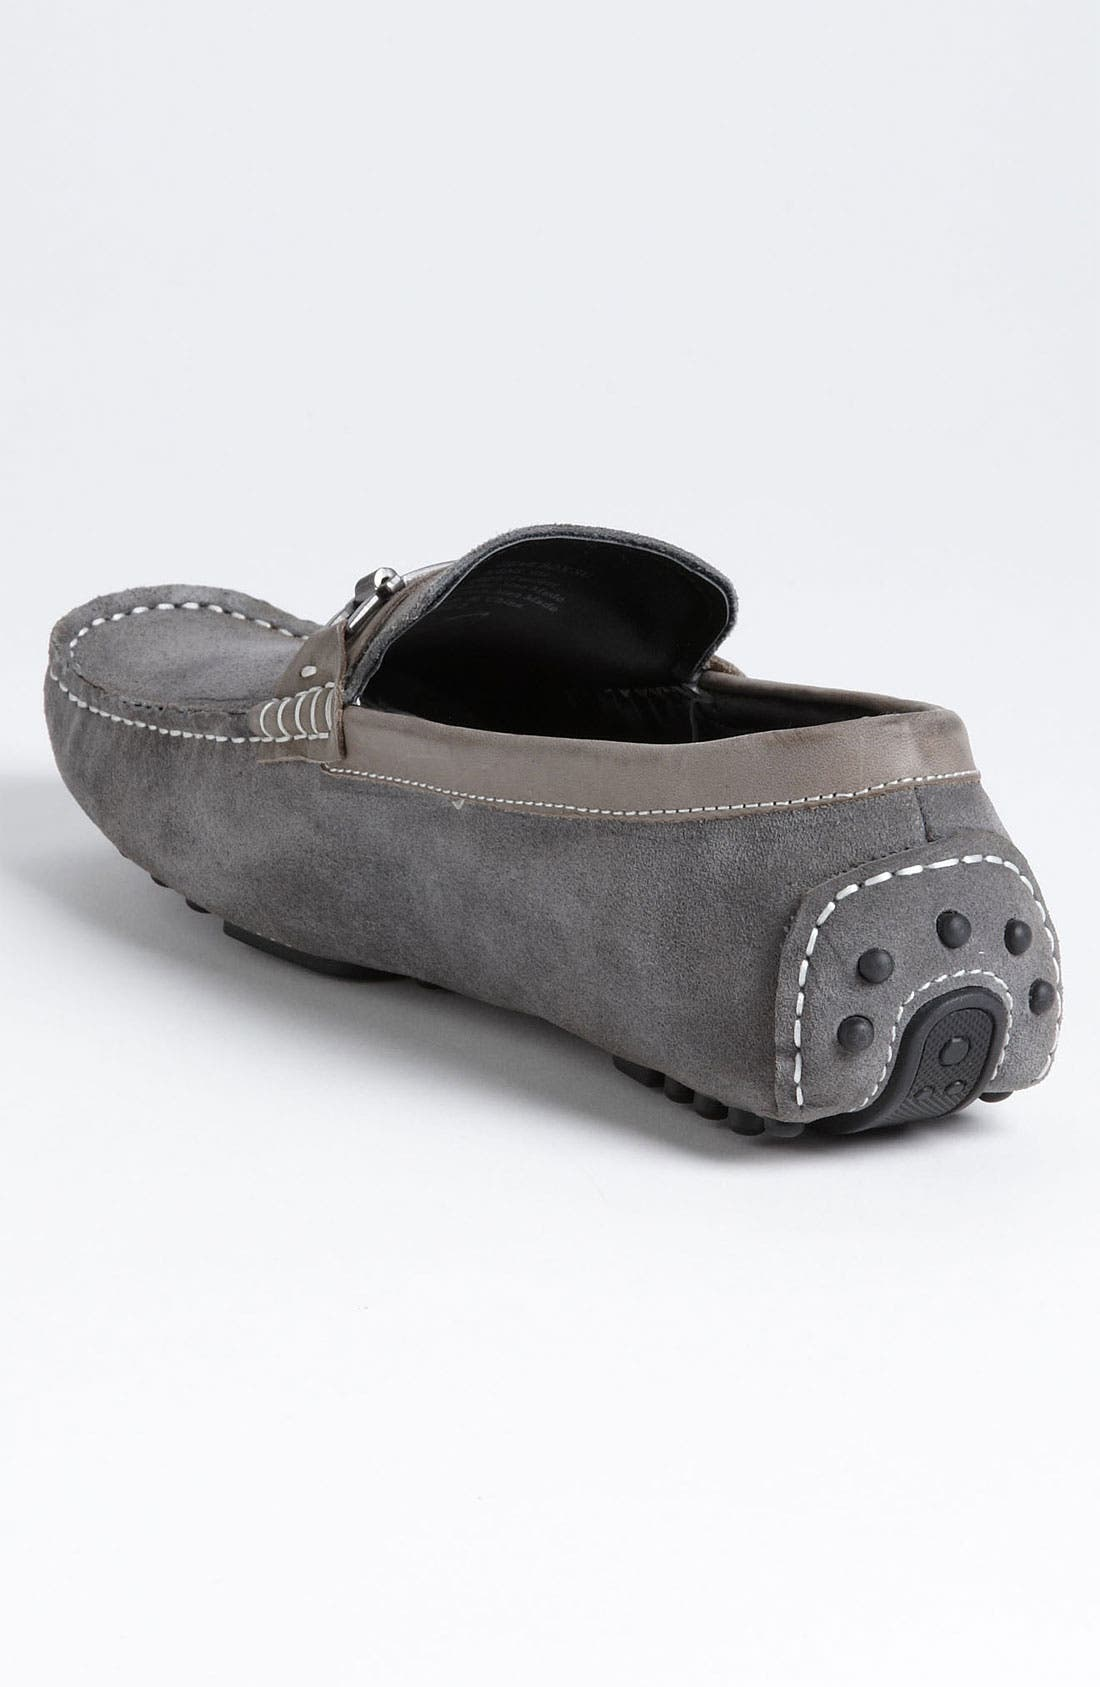 Alternate Image 2  - Kenneth Cole Reaction 'Gear Box' Suede Driving Shoe (Online Exclusive)